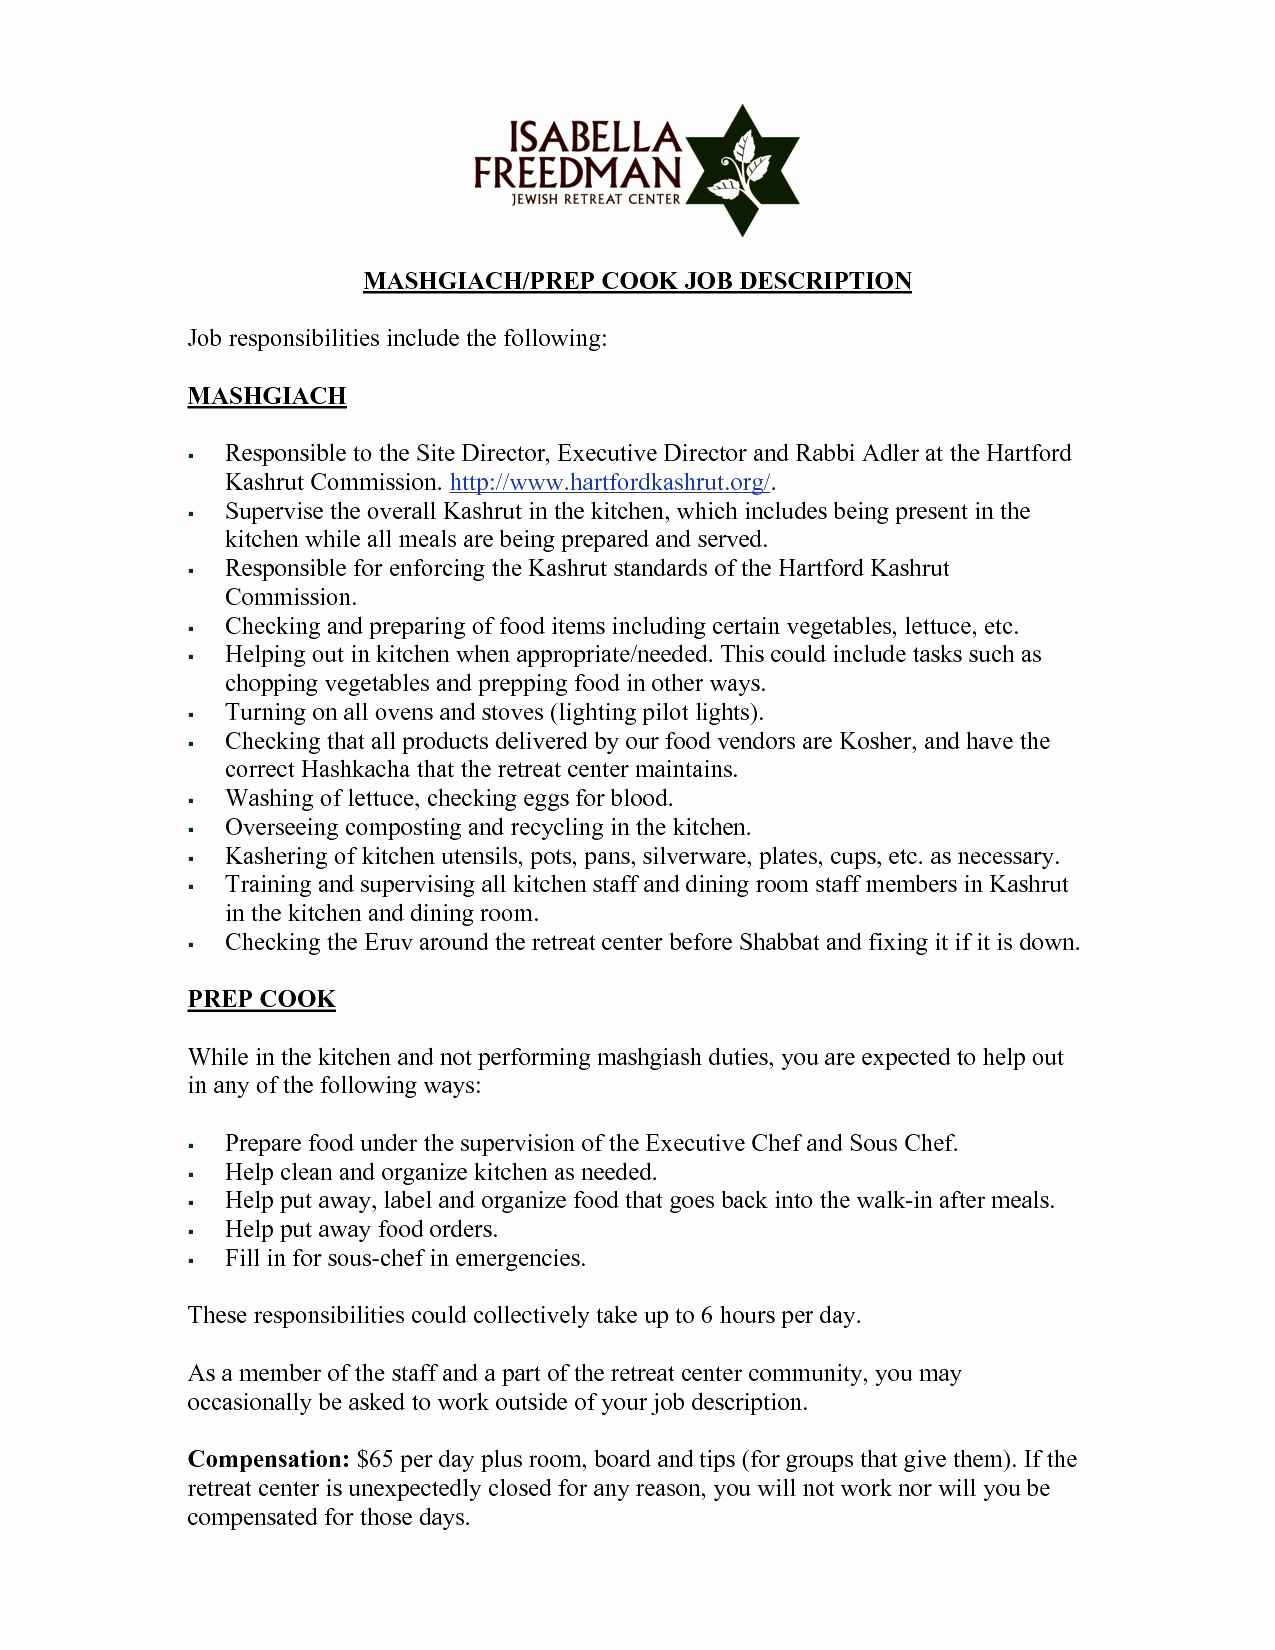 Cover Letter Template Healthcare - Resume Template for Healthcare Professionals Lovely Resume and Cover